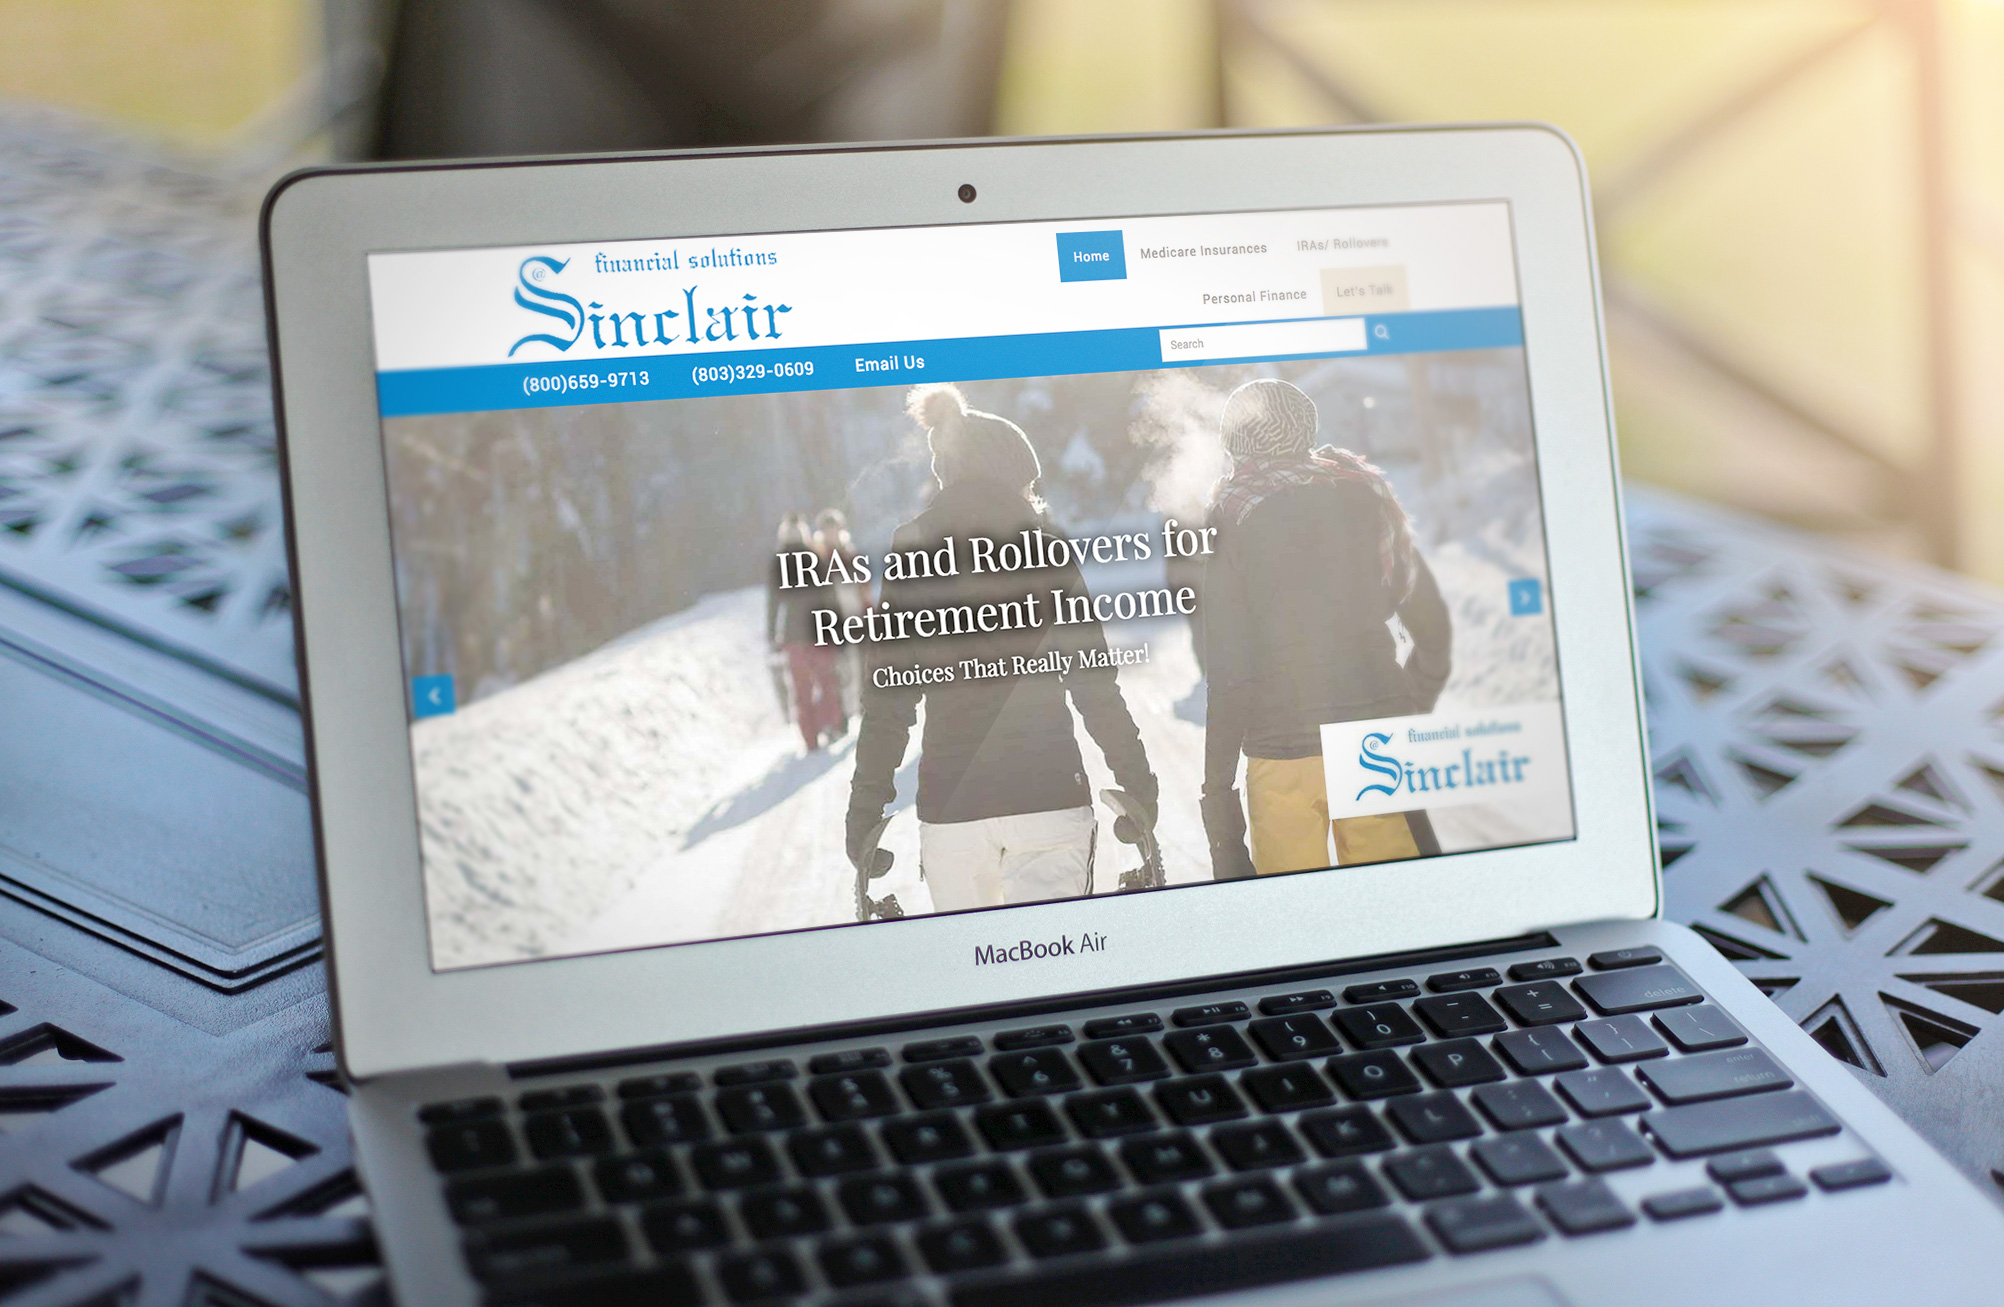 Sinclair Financial Solutions Website